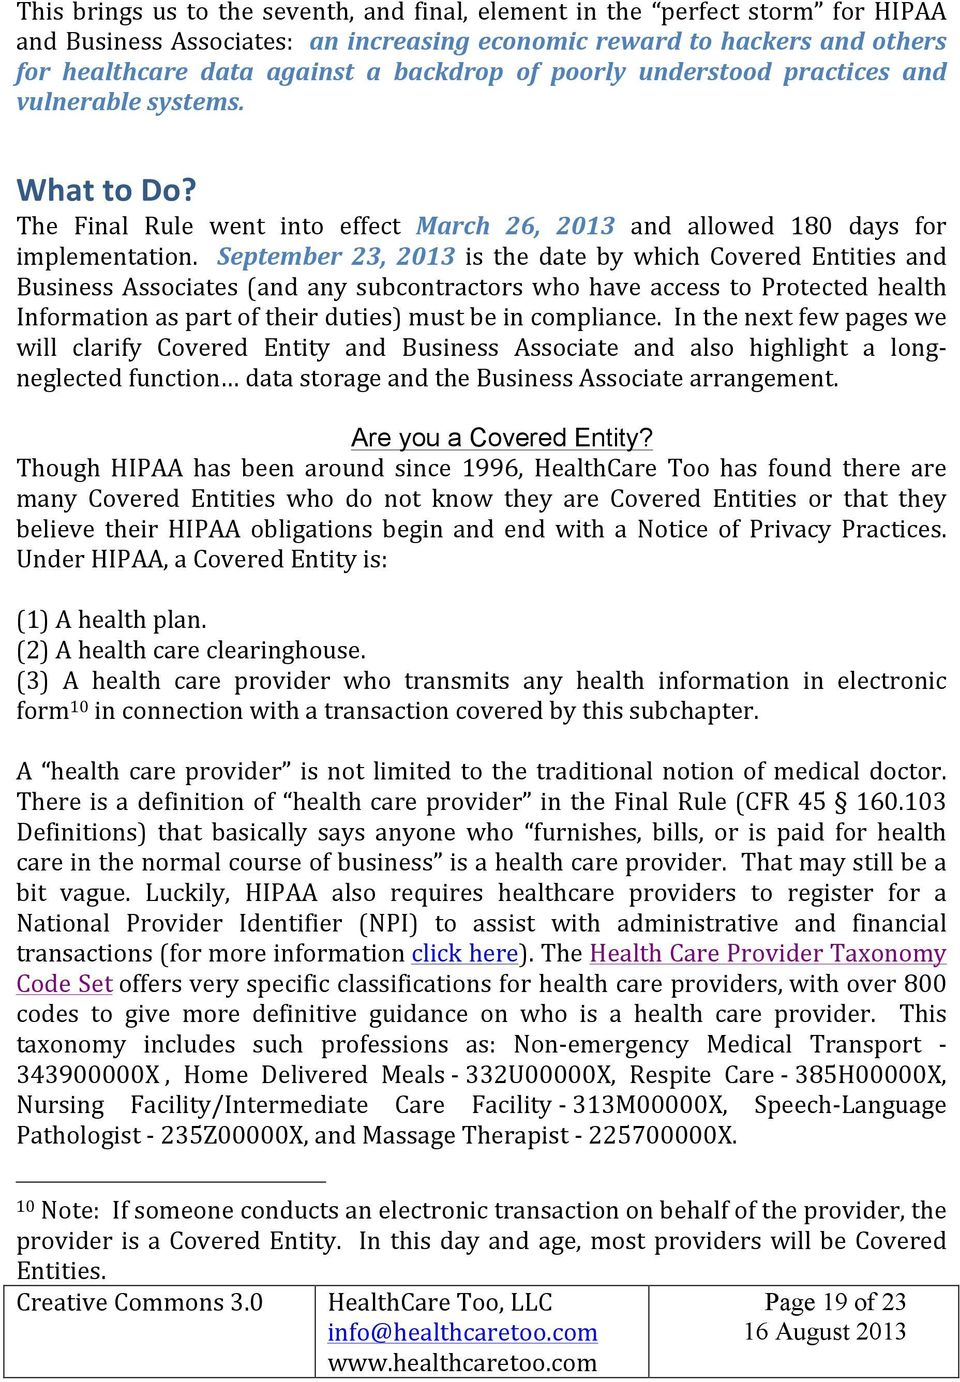 September 23, 2013 is the date by which Covered Entities and Business Associates (and any subcontractors who have access to Protected health Information as part of their duties) must be in compliance.